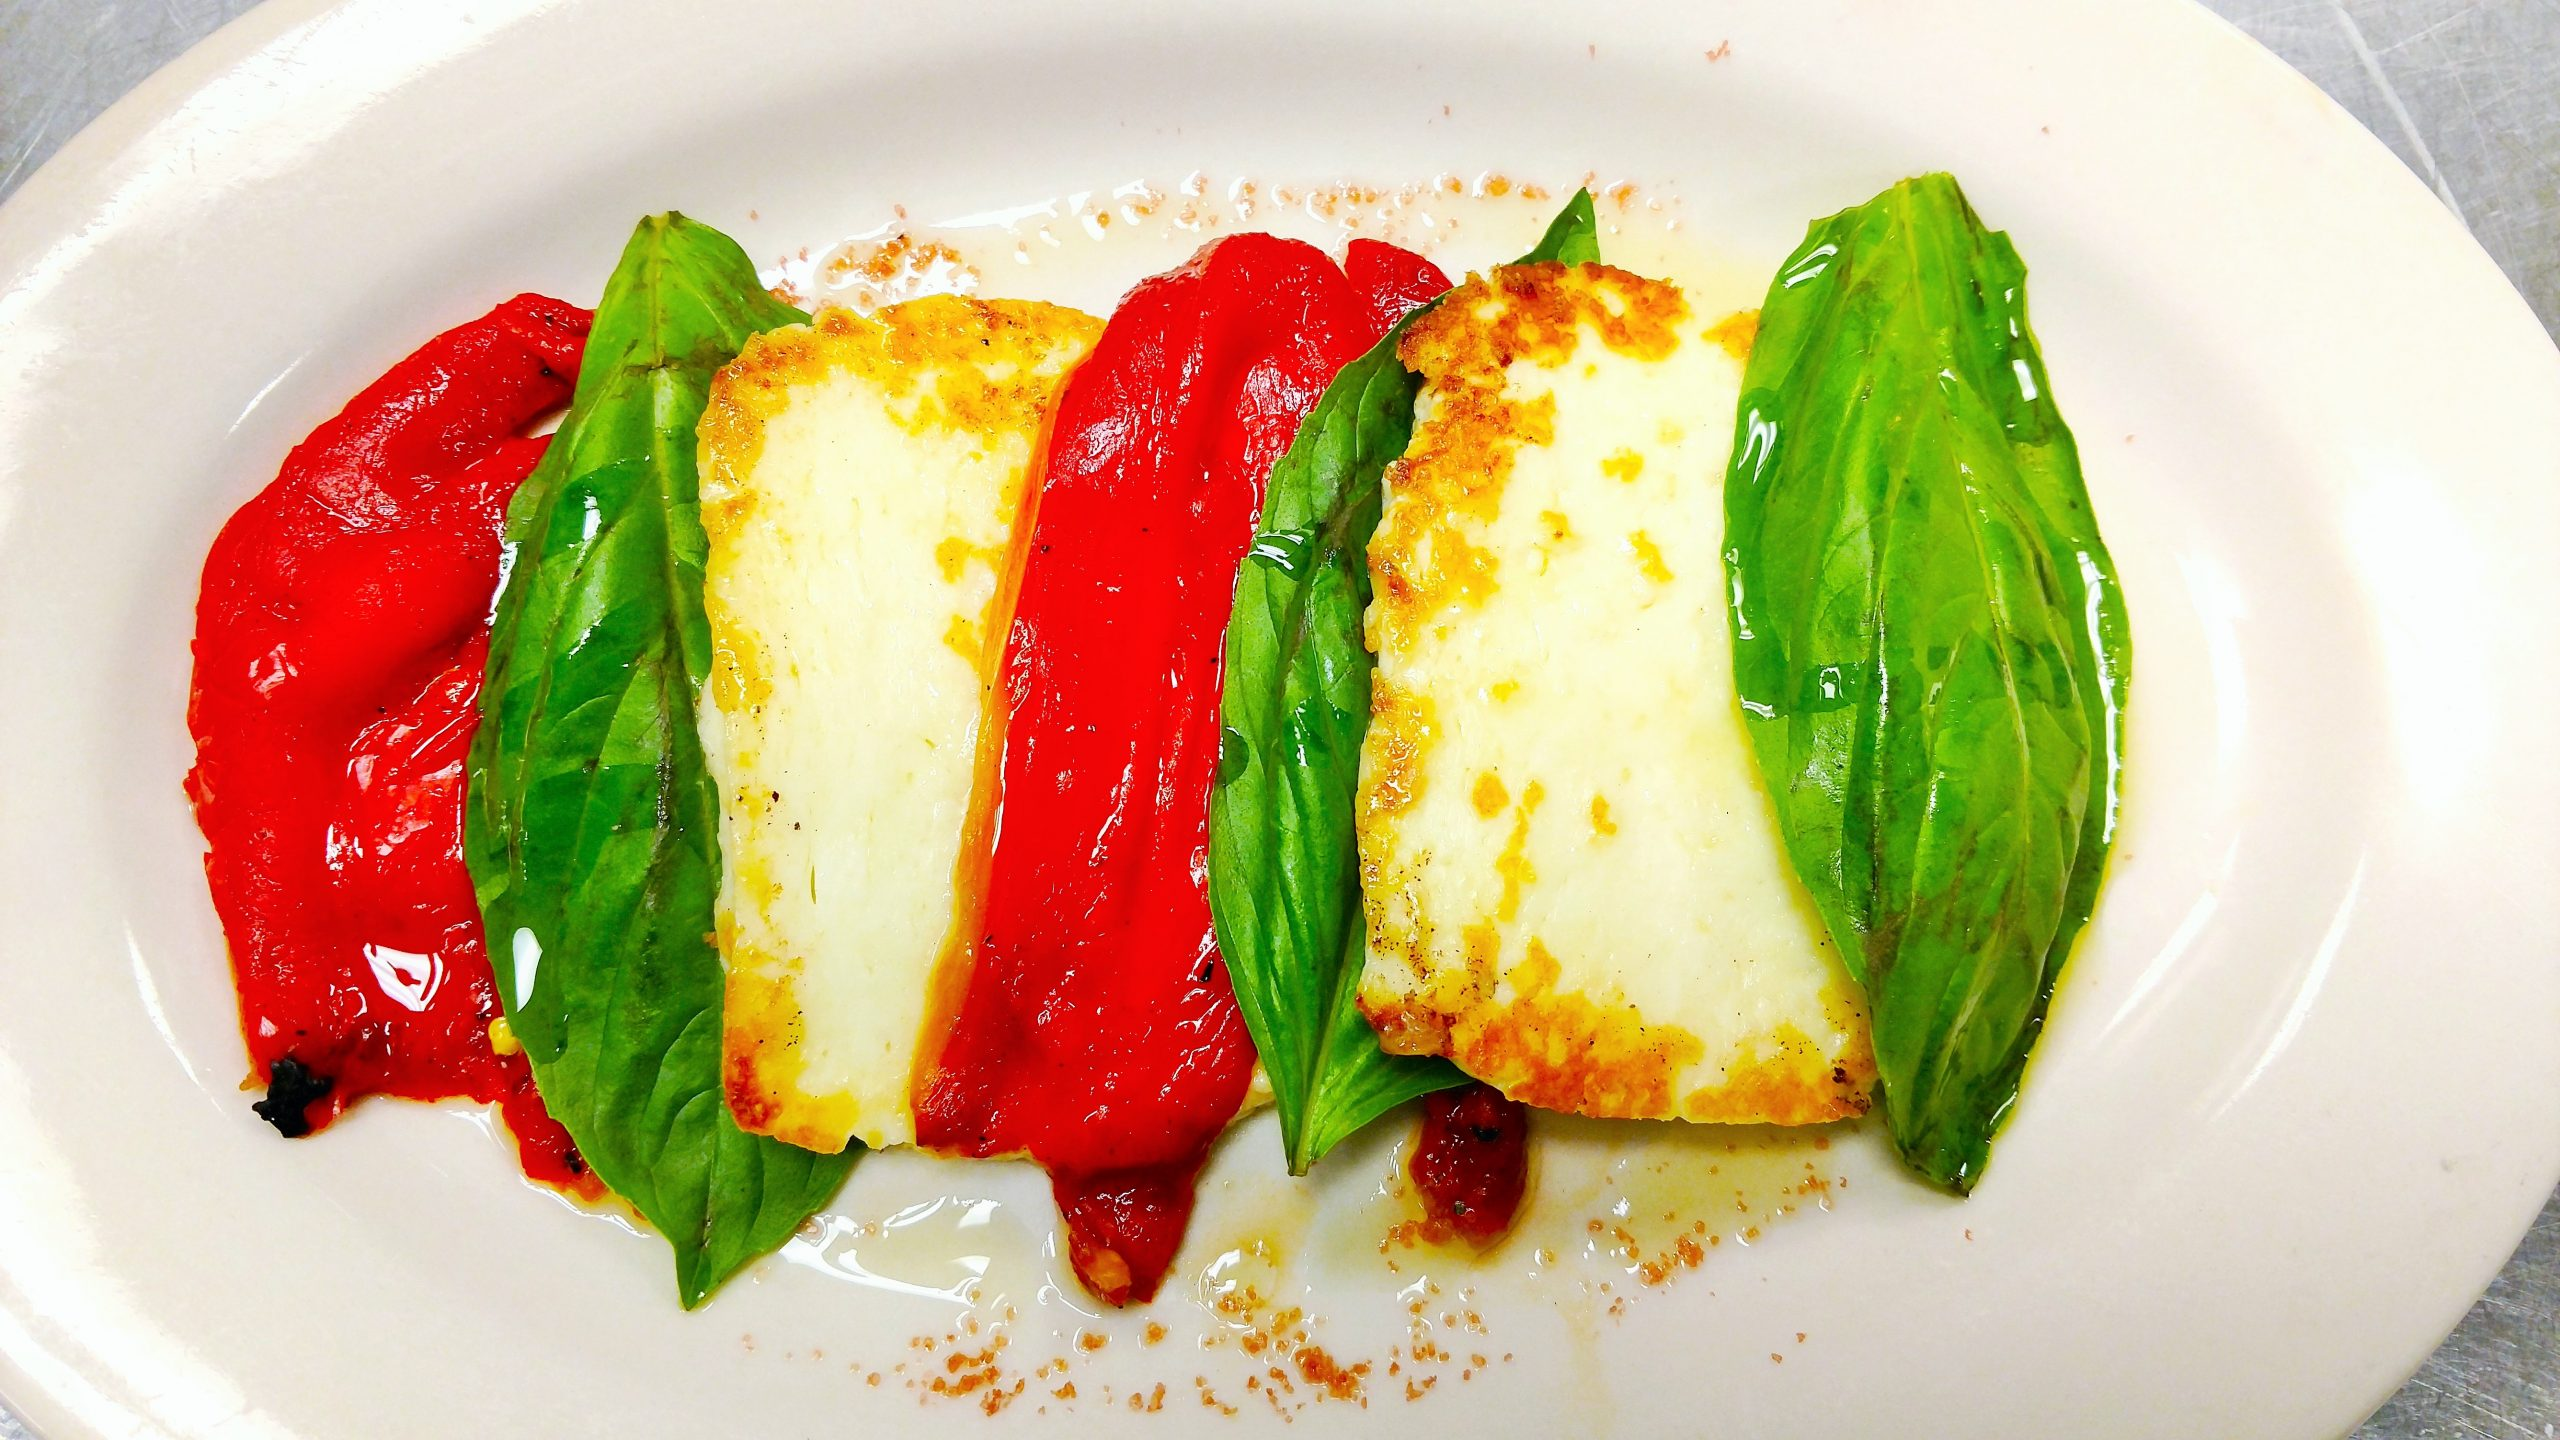 Jake and Telly's Specials - Close up of the haloumi & Peppers. Red peppers, green basil leaves, and white haloumi cheese on a white plate.